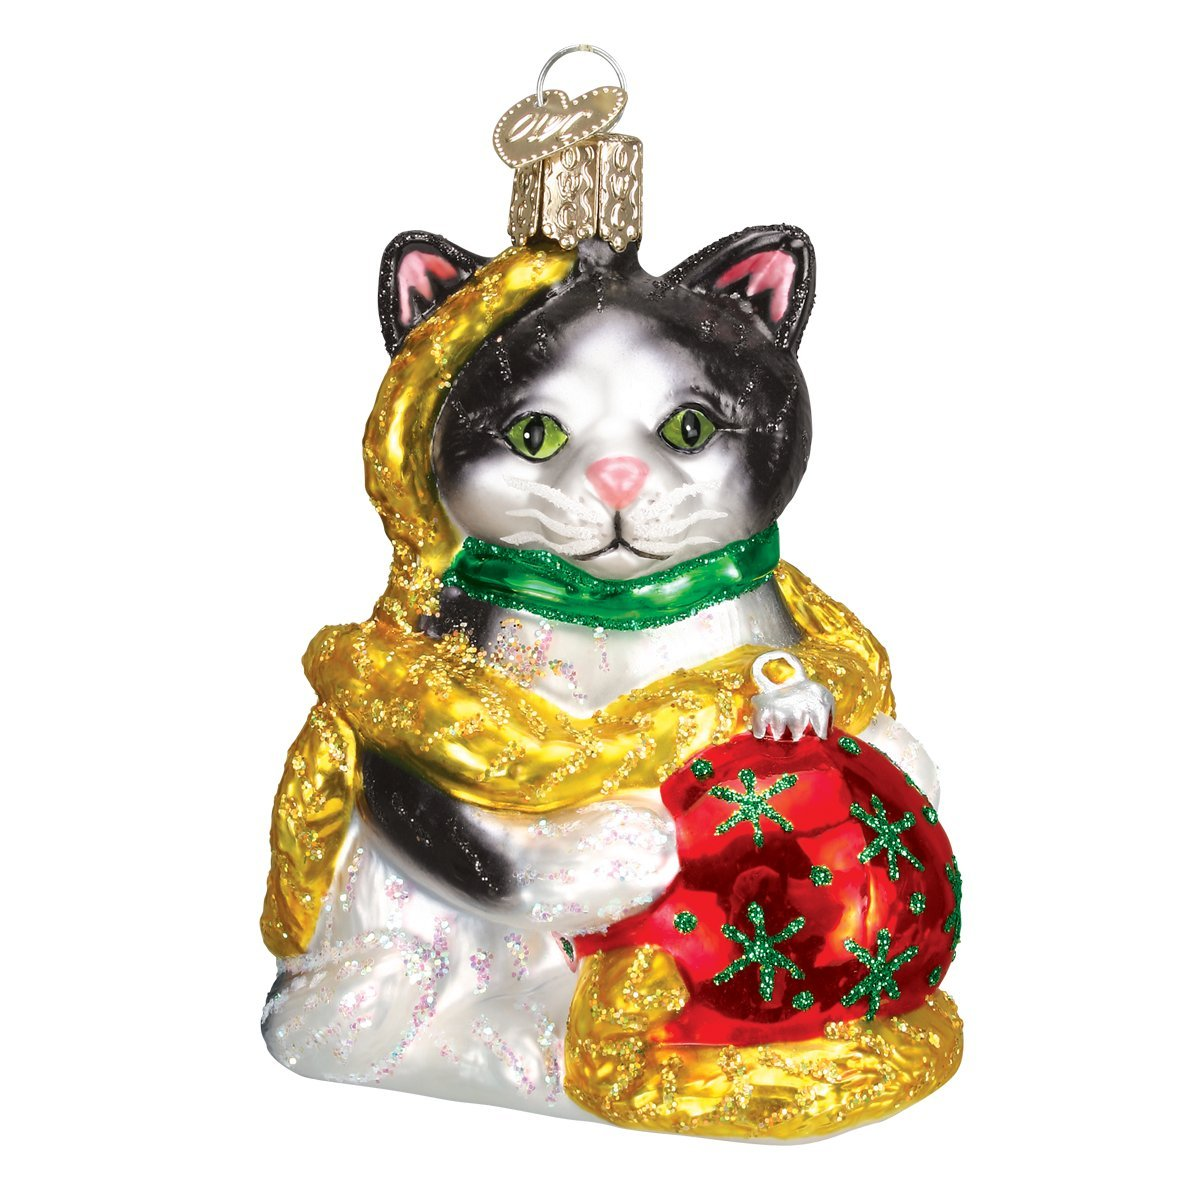 Old World Christmas Ornaments: Holiday Kitten Glass Blown Ornaments for Christmas Tree